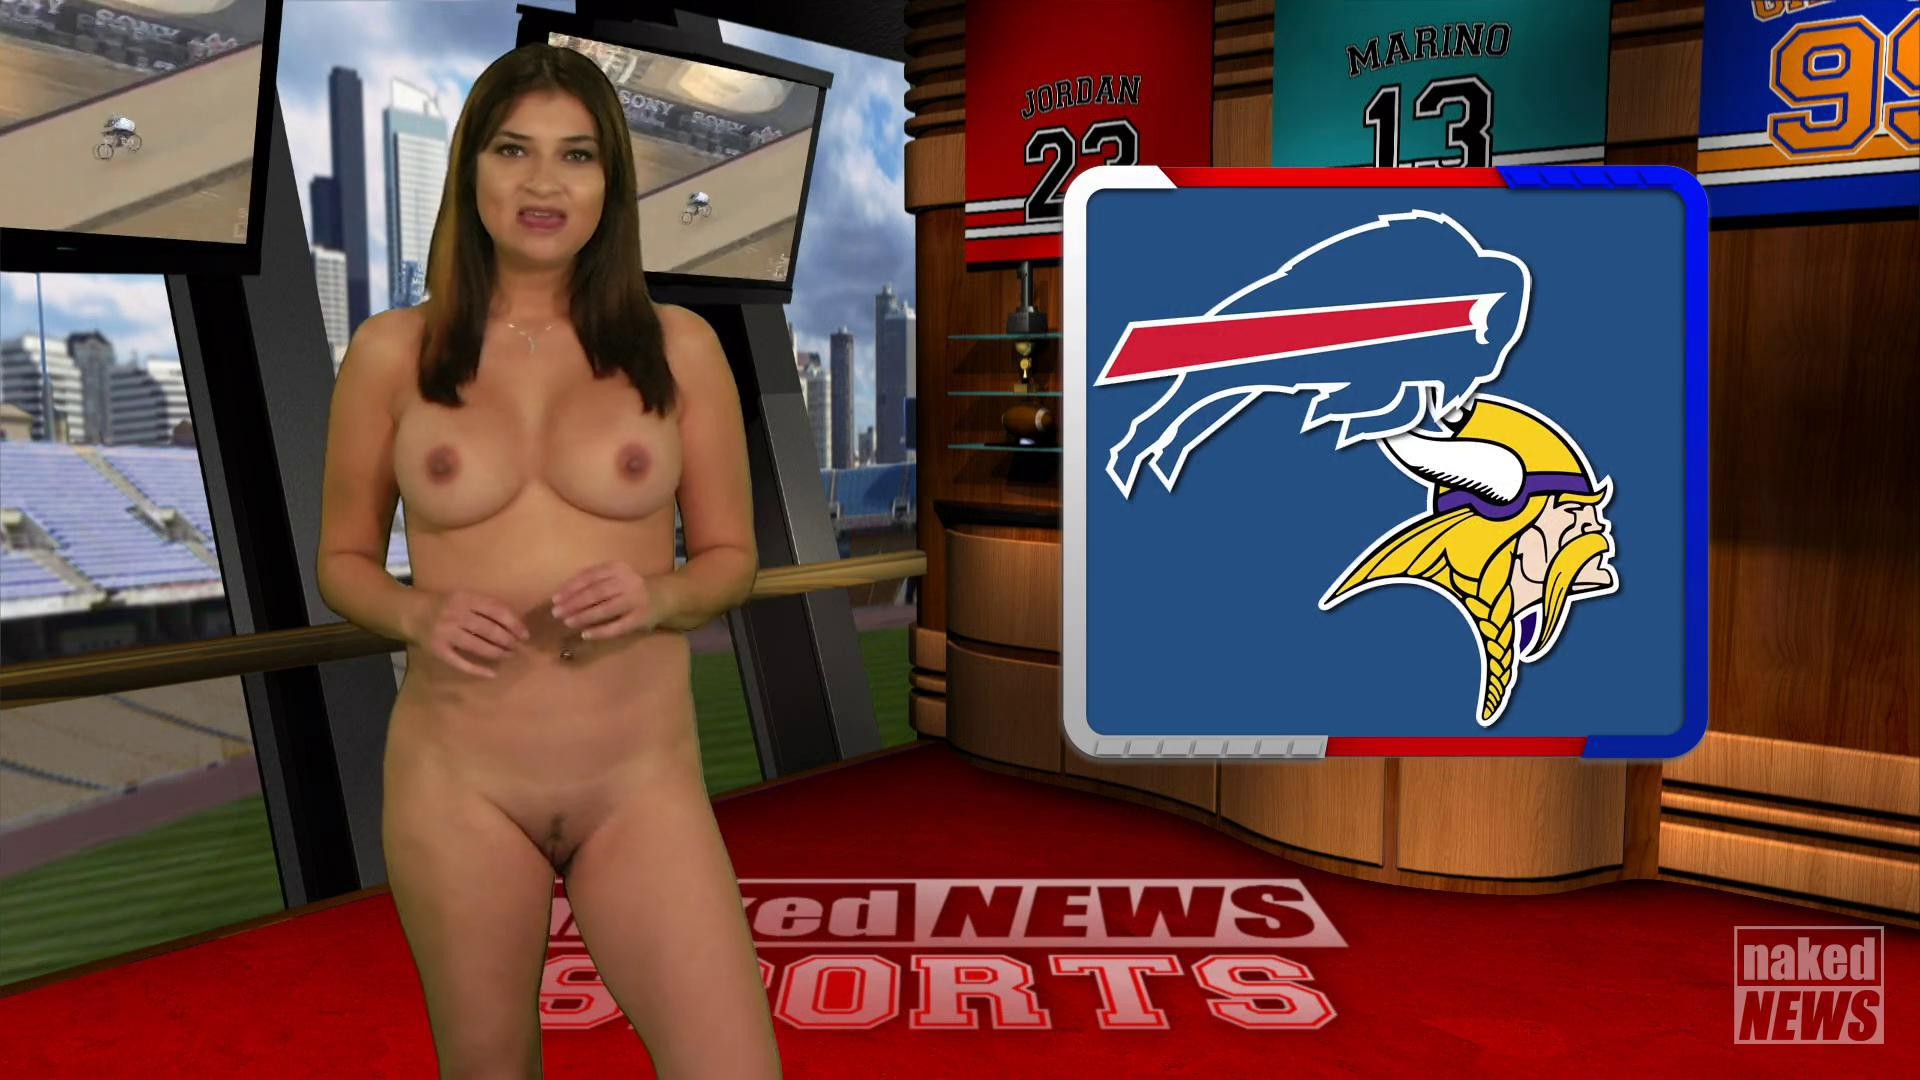 Map sports news nude